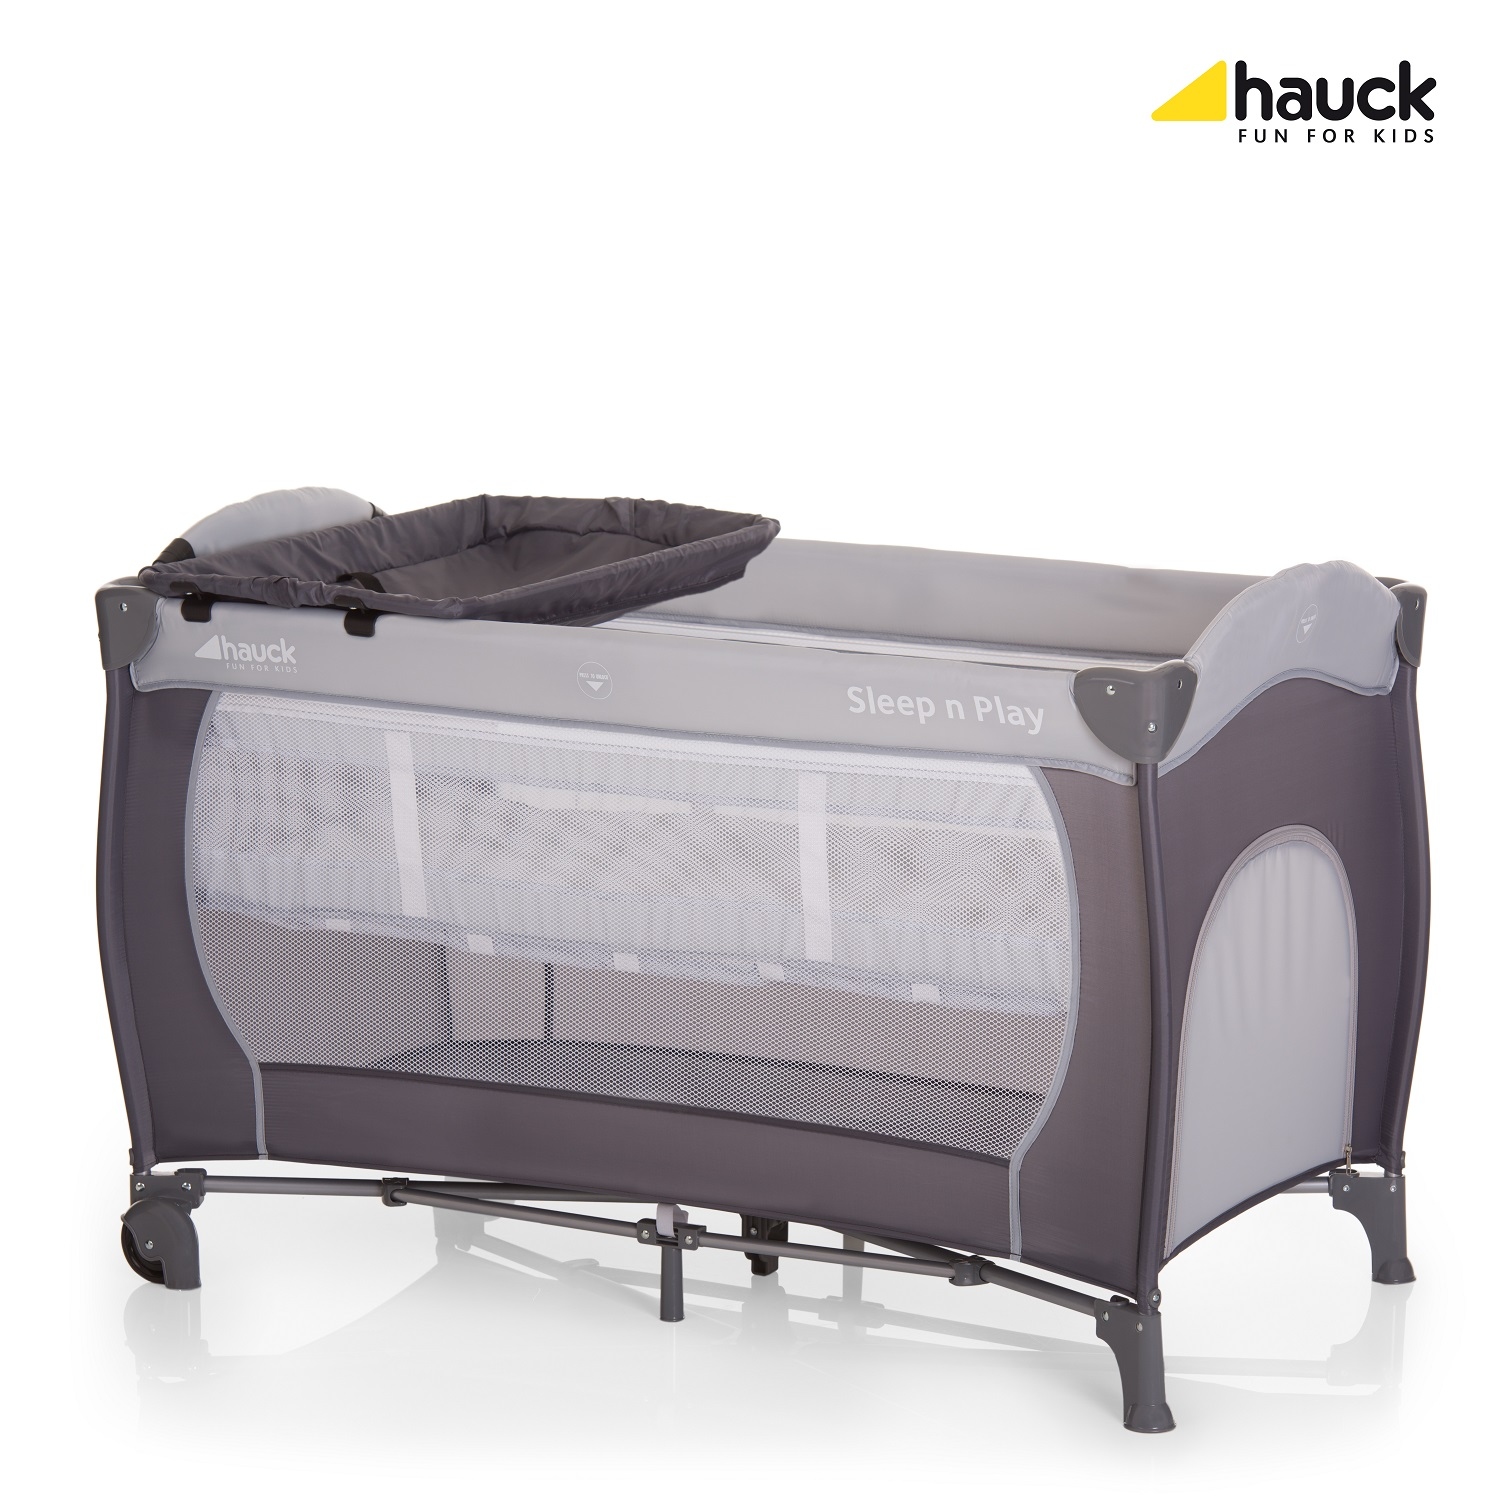 Hauck Travel Cot Sleep N Play Centre 2019 Stone Buy At